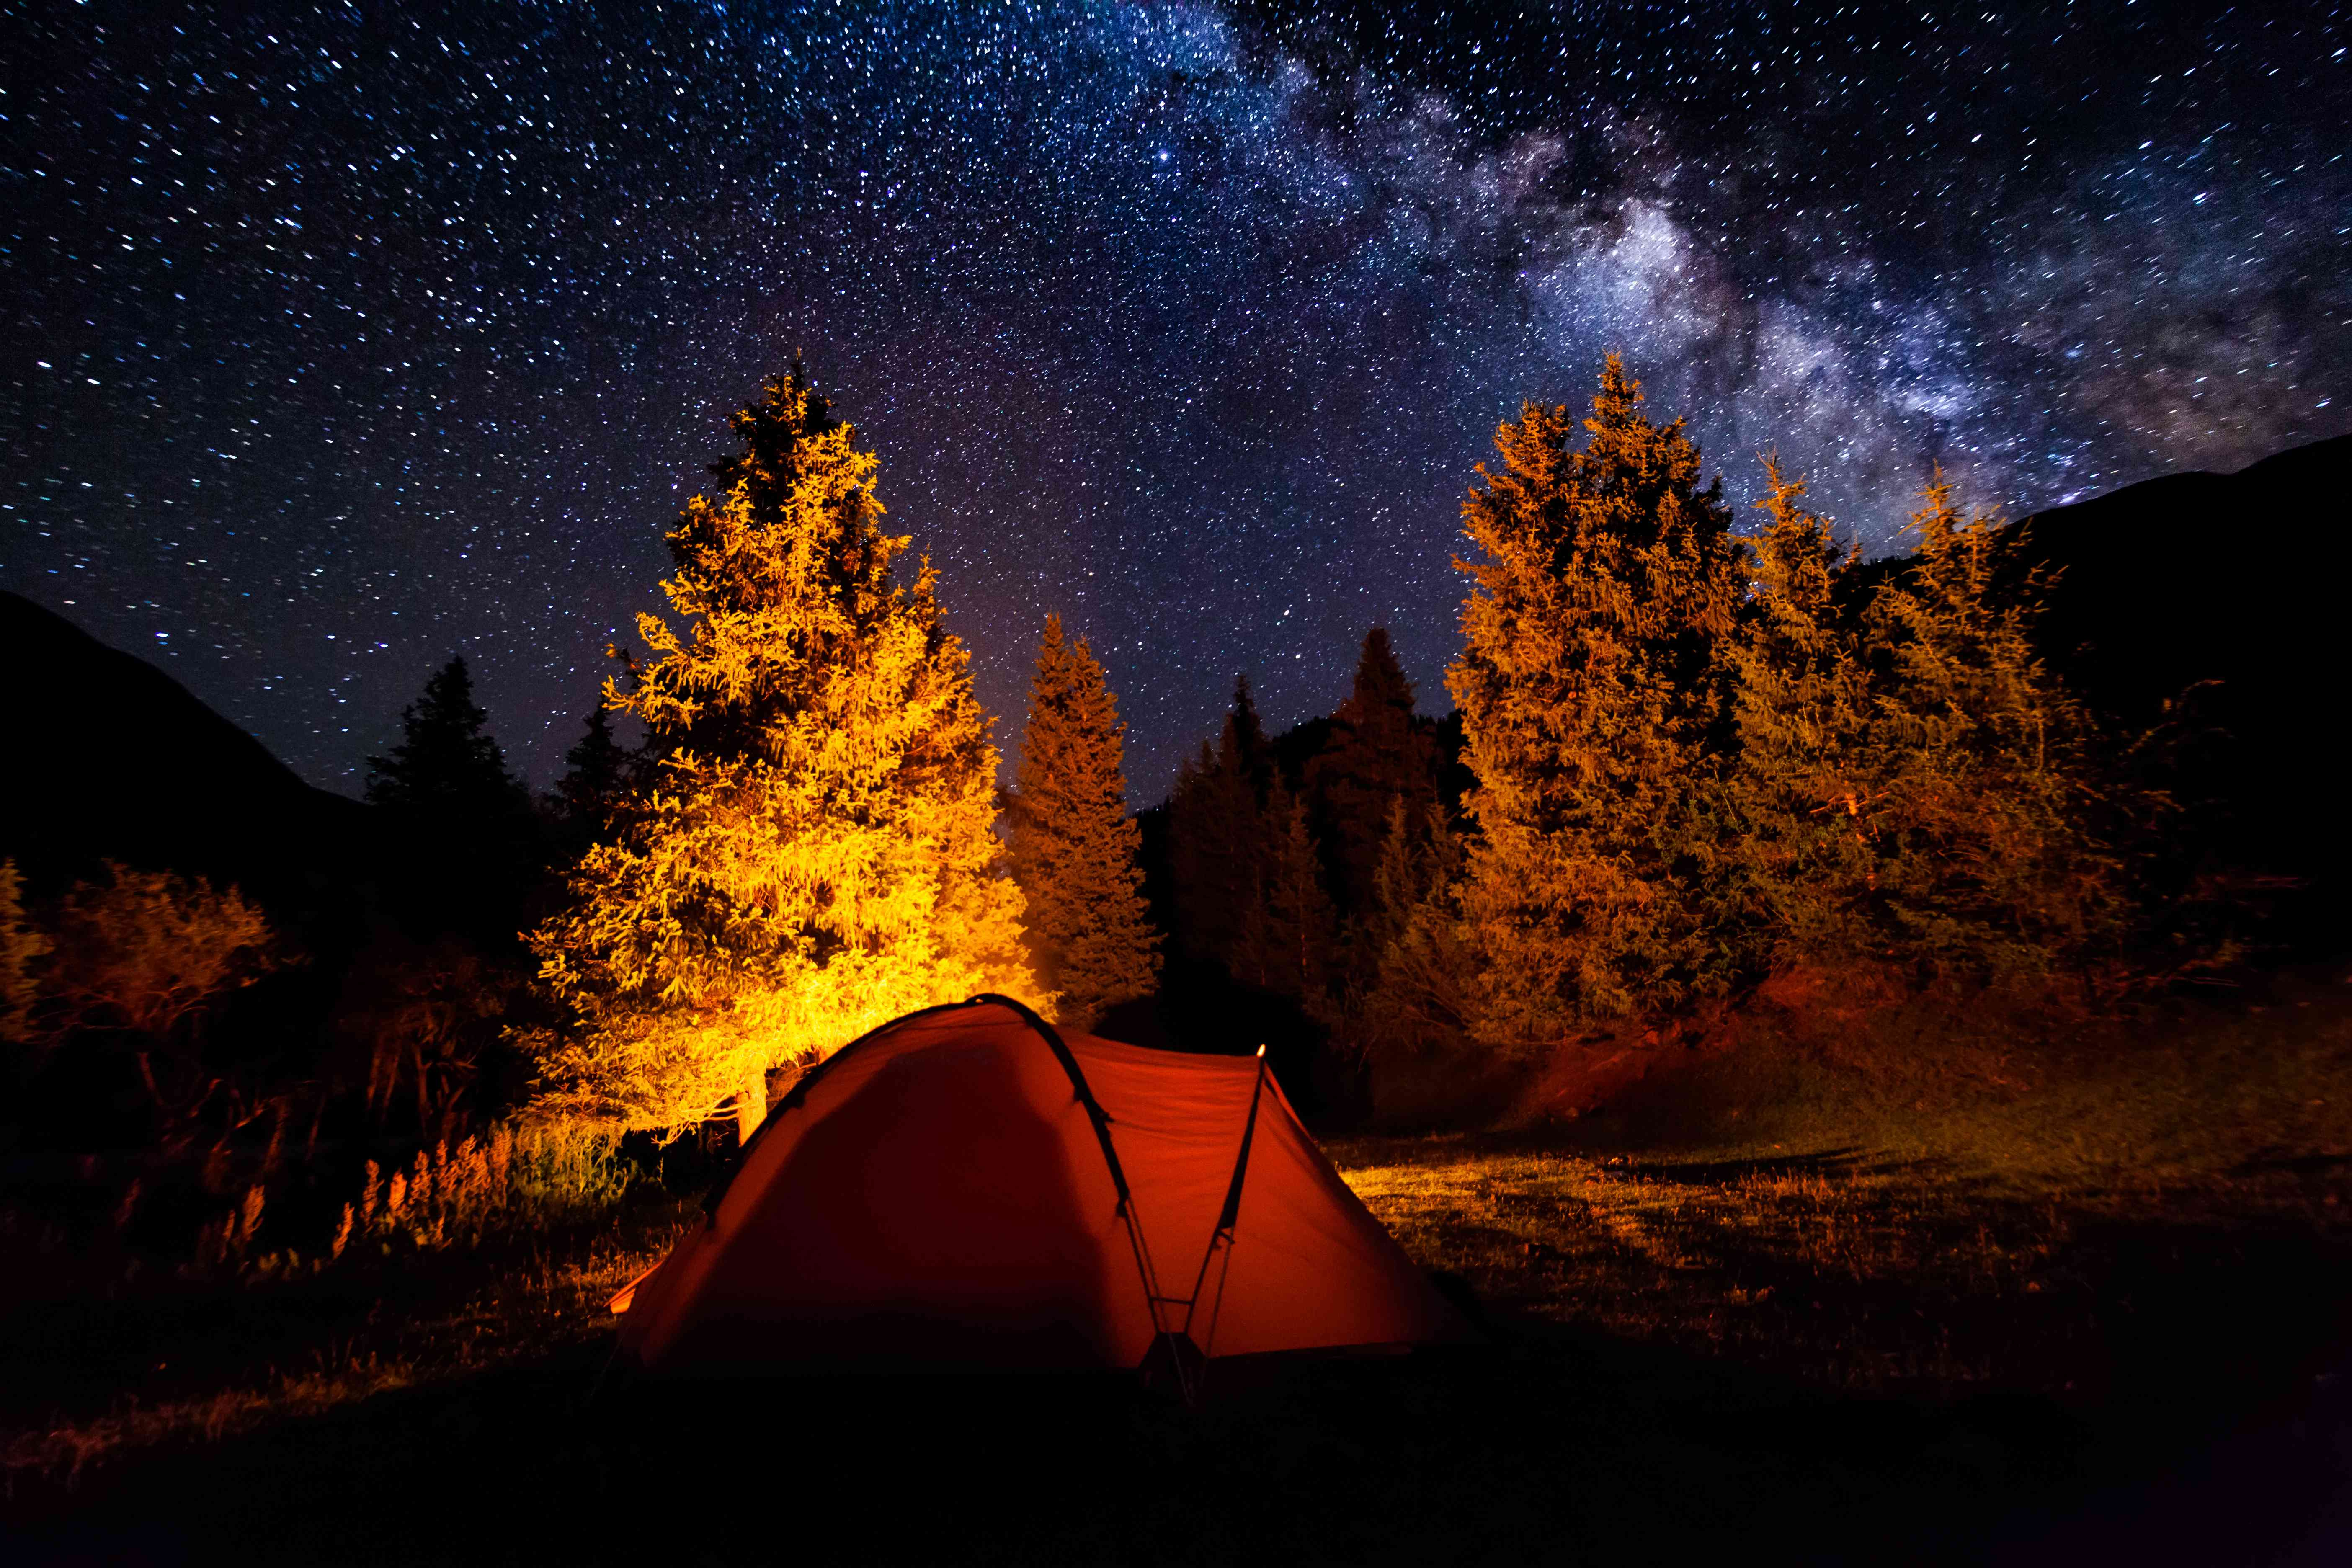 Tent near campfire in the forest under starry night sky